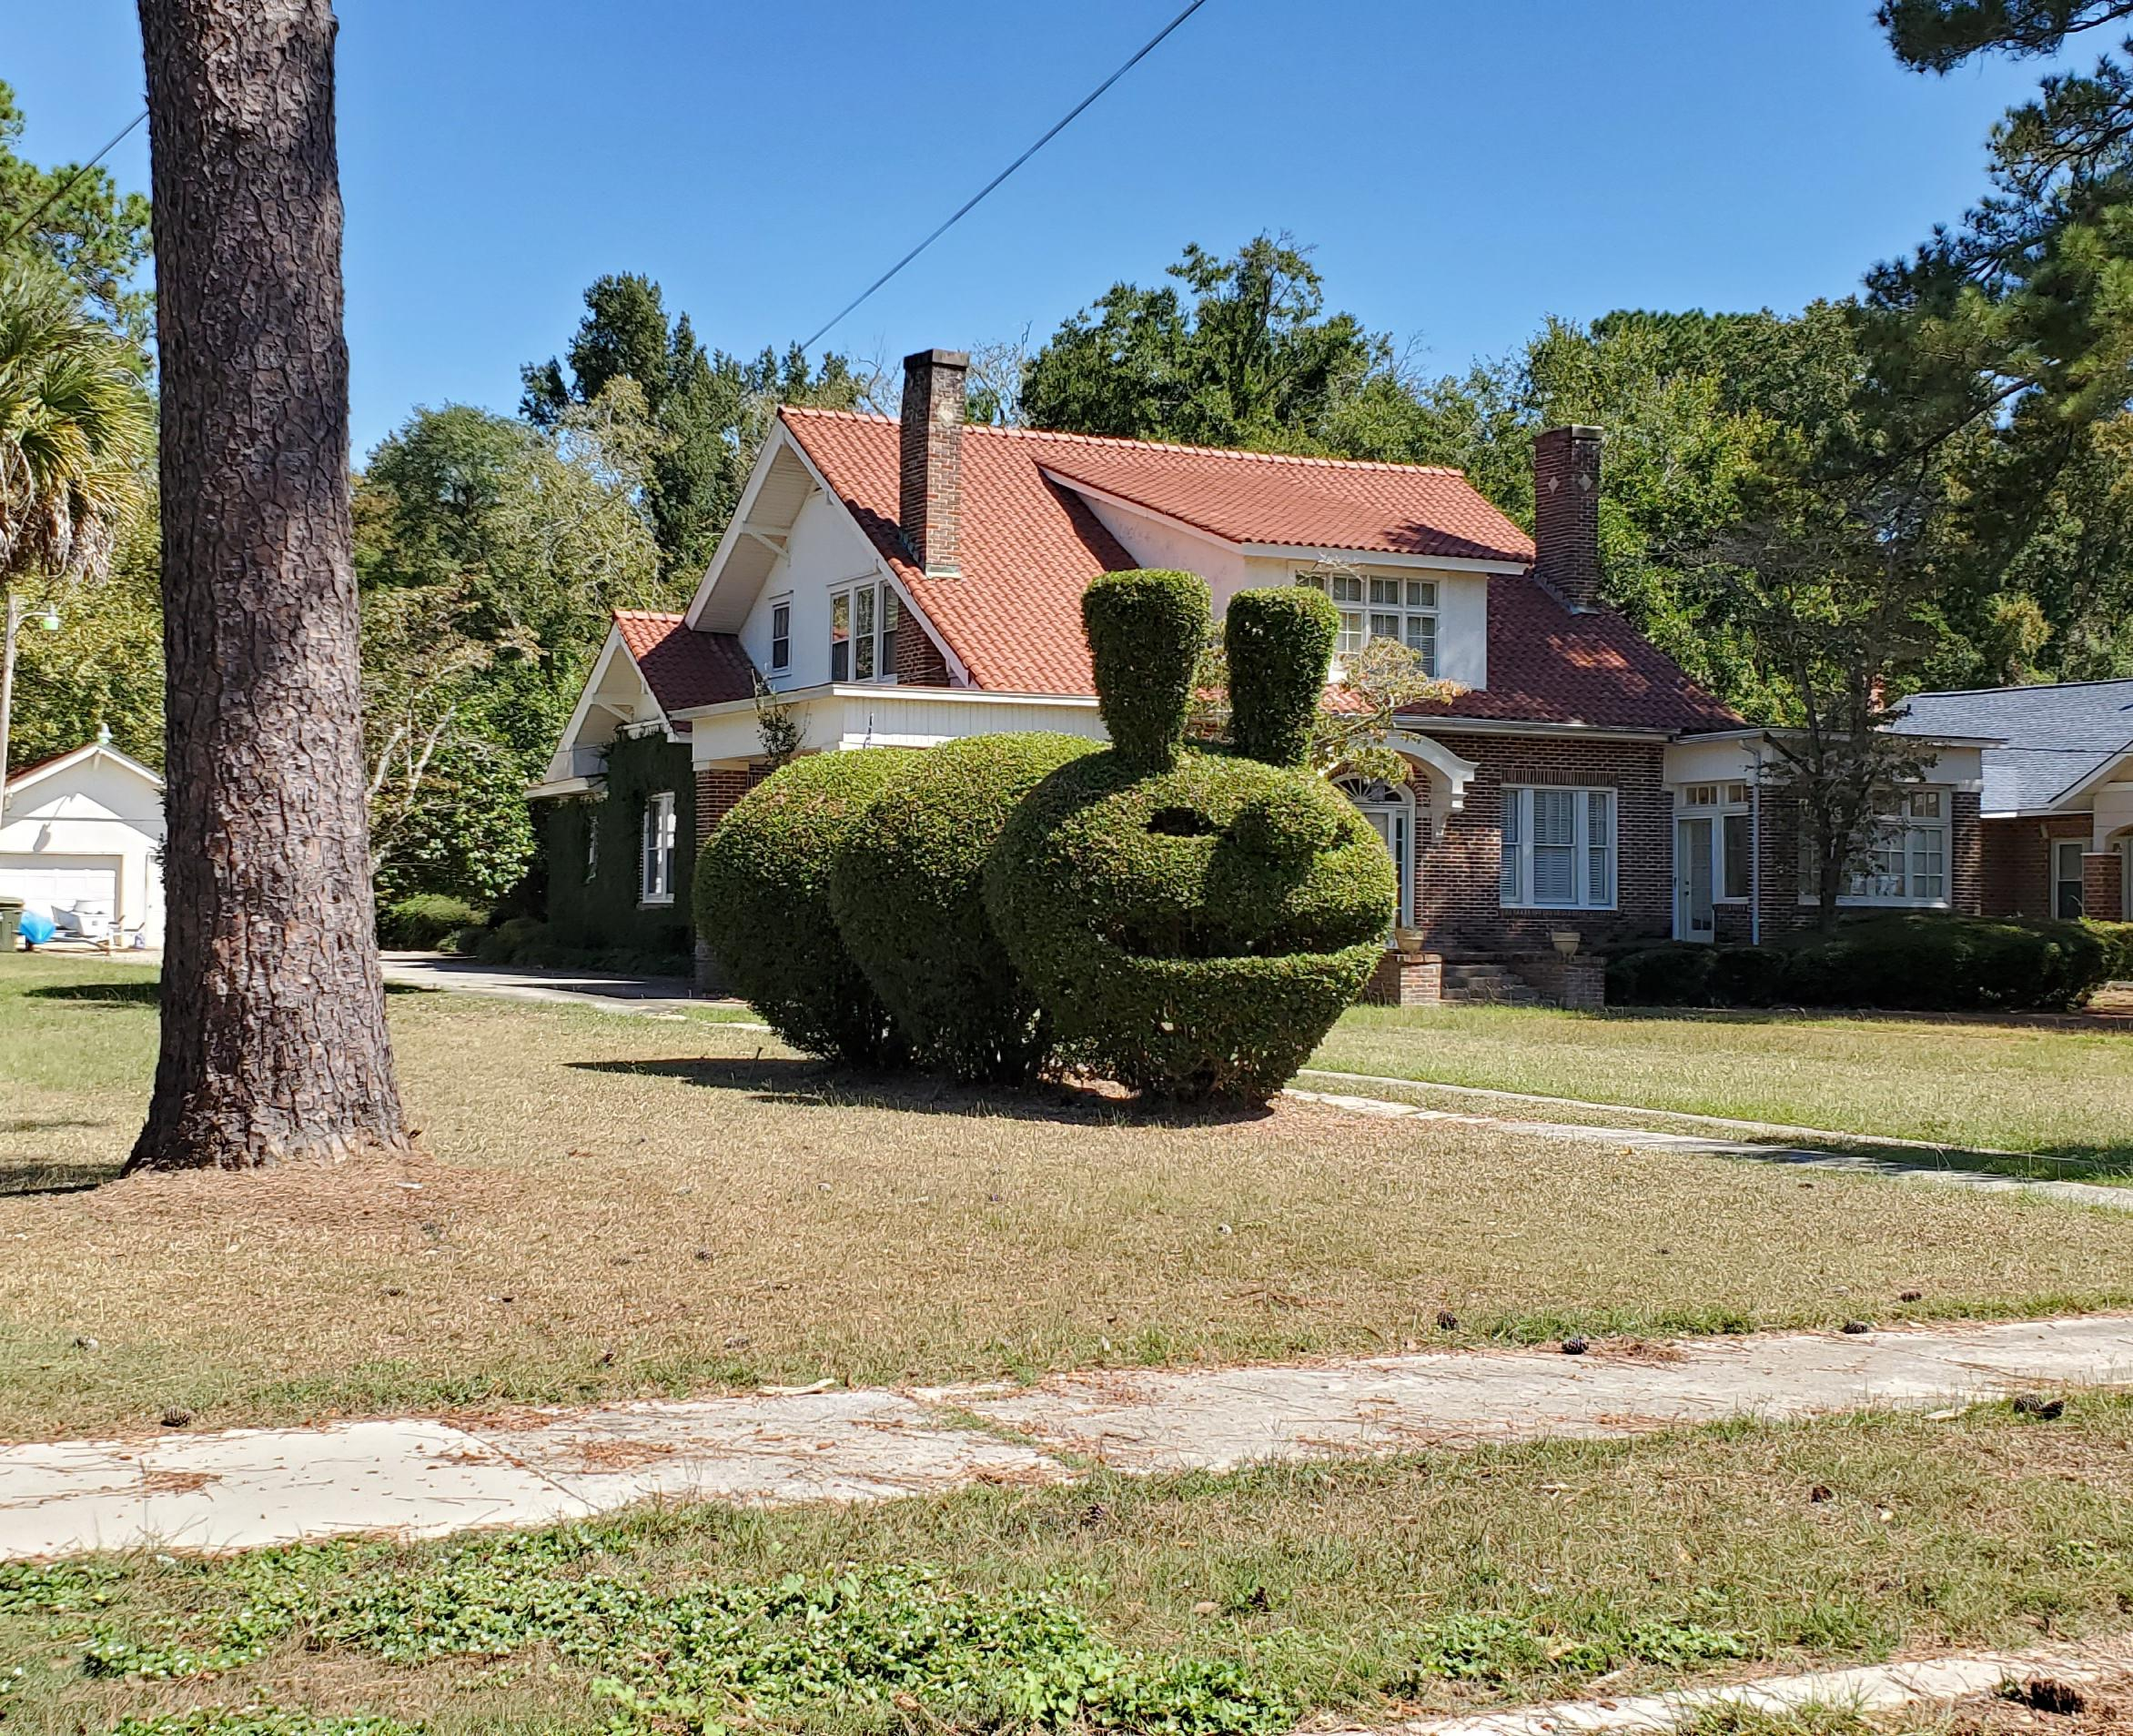 These bushes I saw today on my drive home